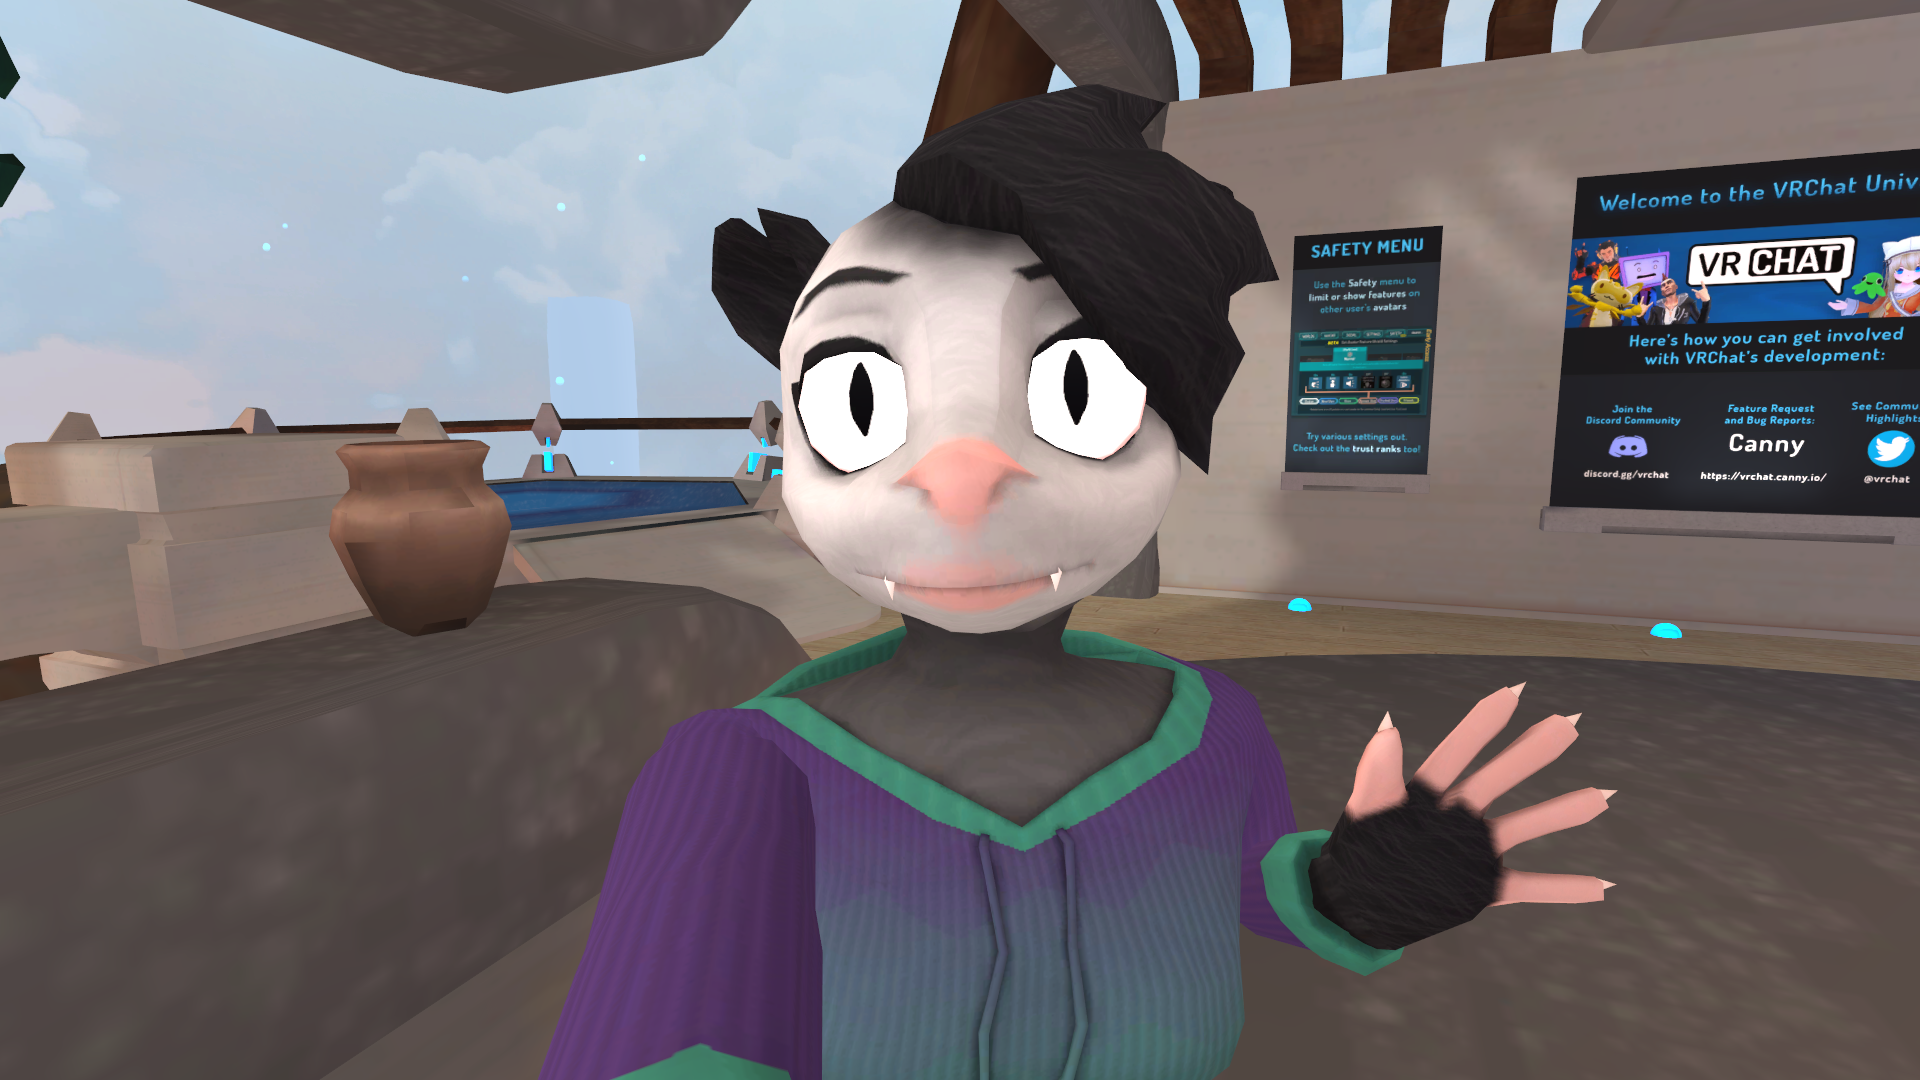 Possum Avatar - PC/Quest Ready